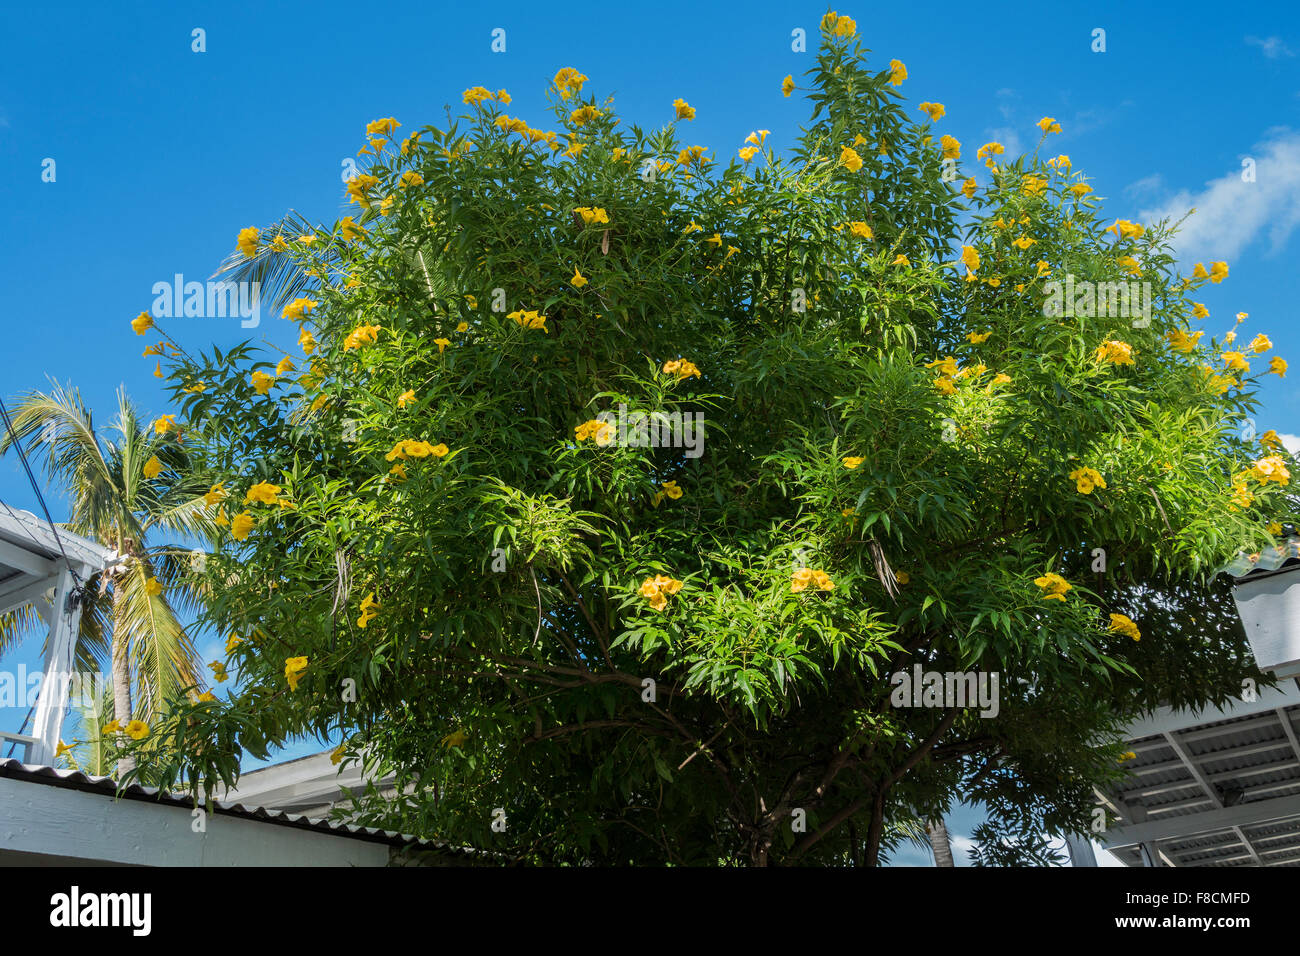 Ginger thomas tacoma stans a tree with yellow trumpet shaped stock ginger thomas tacoma stans a tree with yellow trumpet shaped flowers growing on st croix us virgin islands mightylinksfo